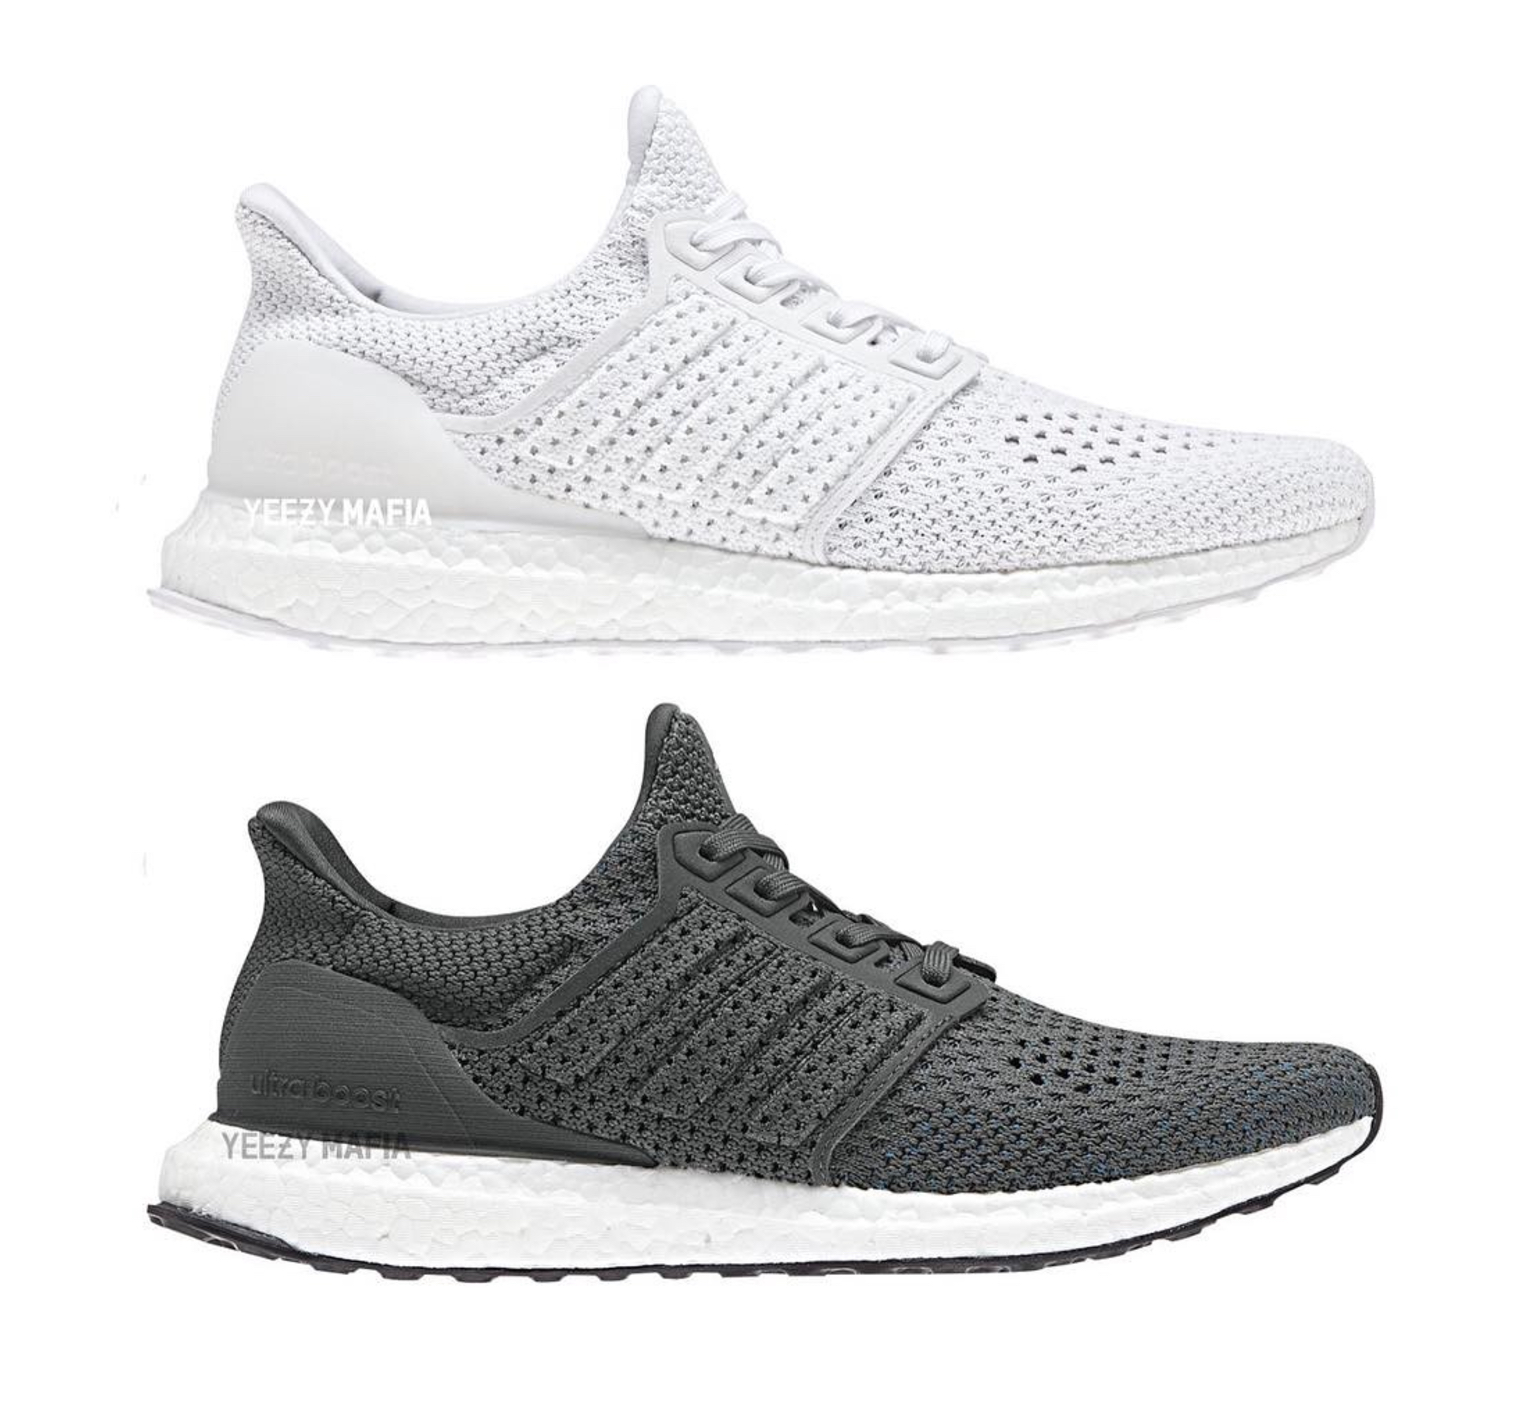 d078b5c4d An adidas UltraBoost Clima Could Be Coming in 2018 - WearTesters